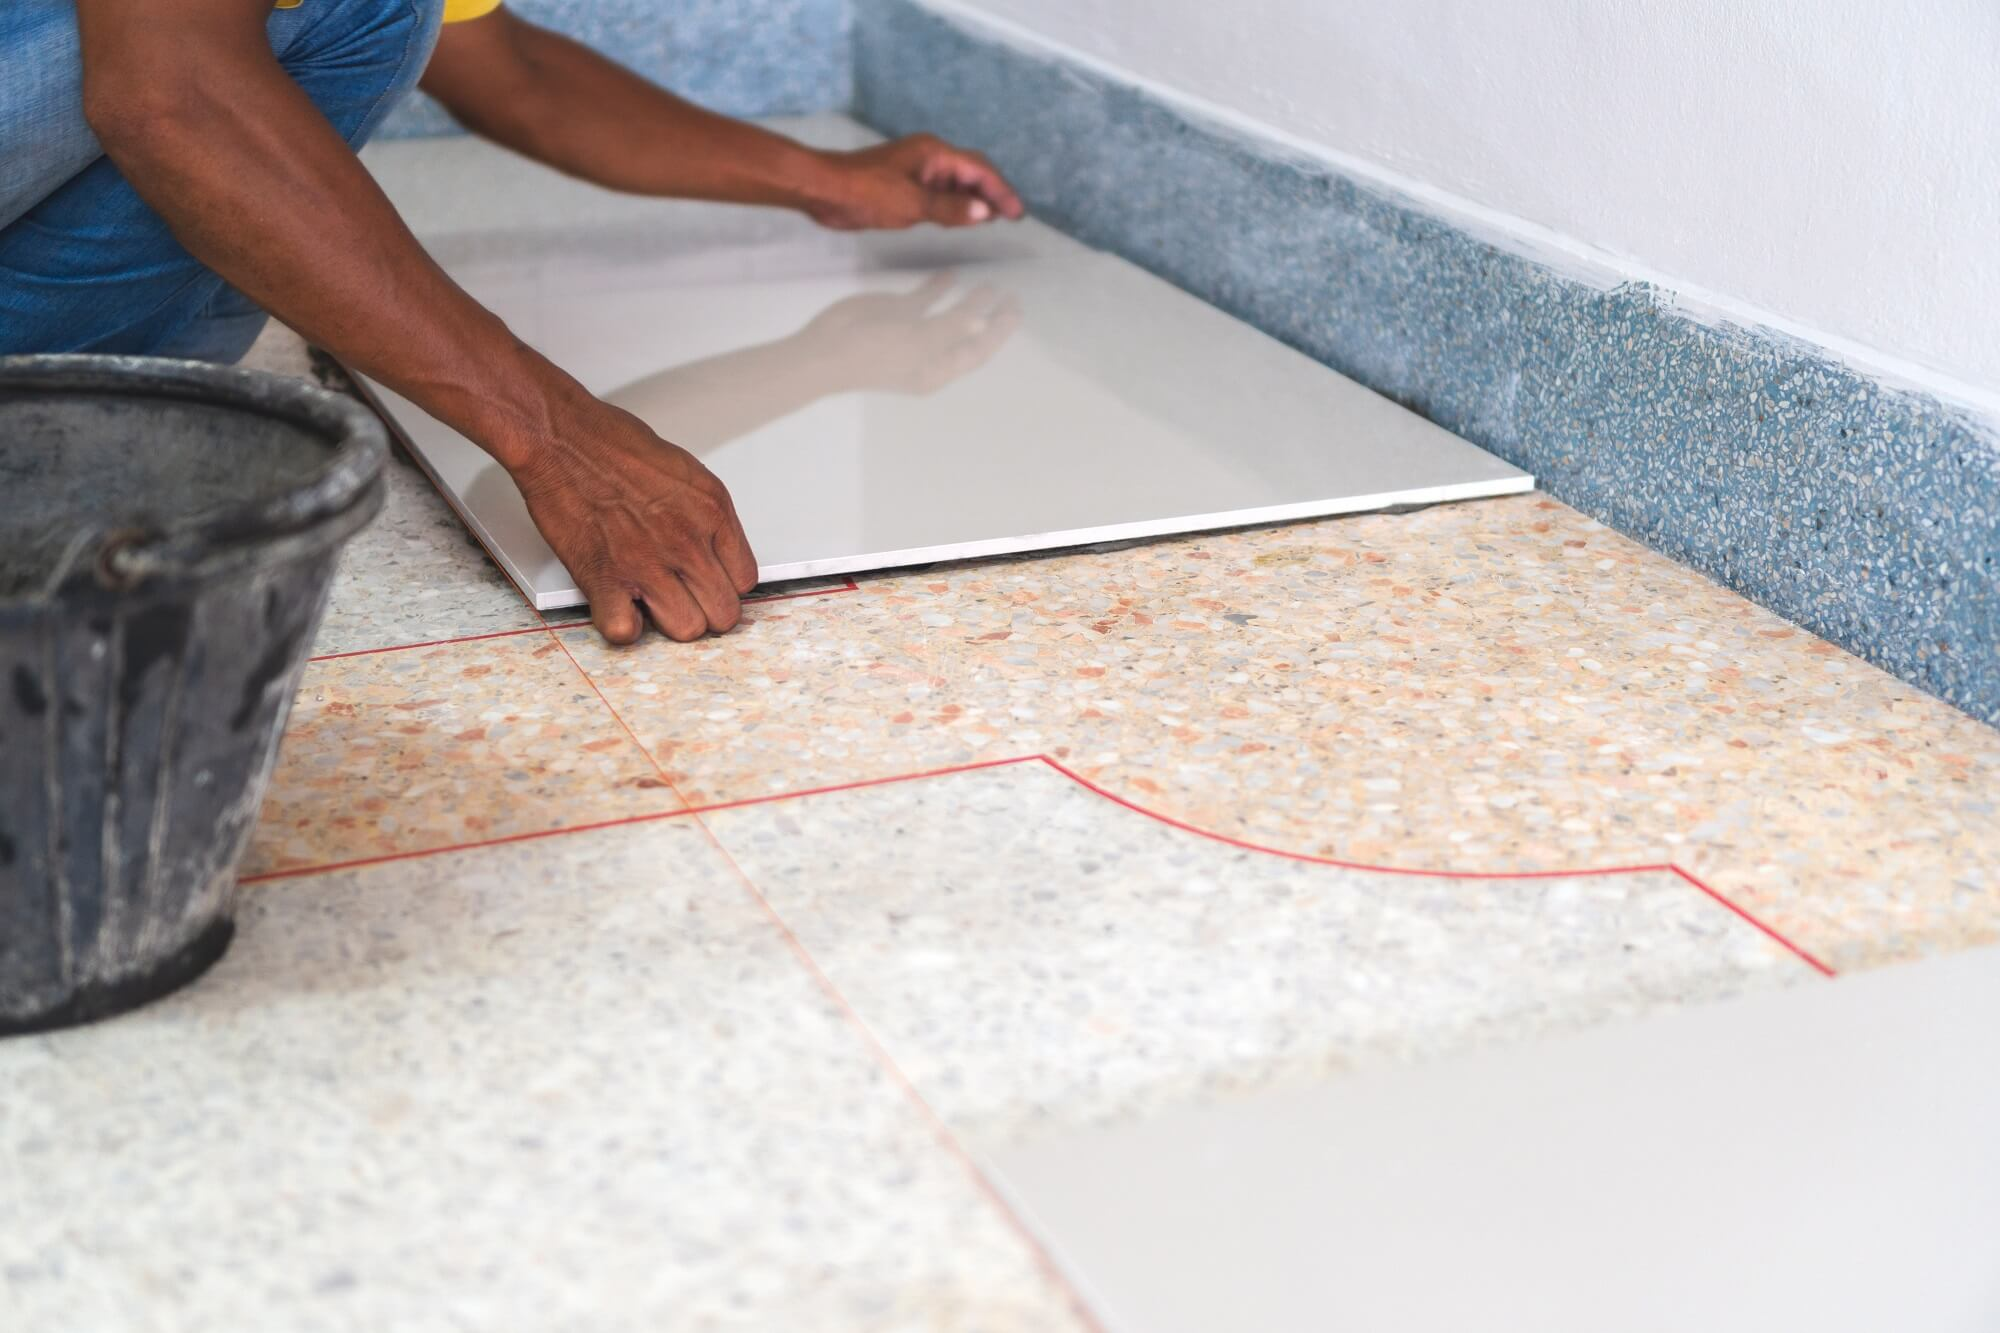 Laying Tile Over Vinyl Should You Do, Can You Put Vinyl Flooring Over Cement Board